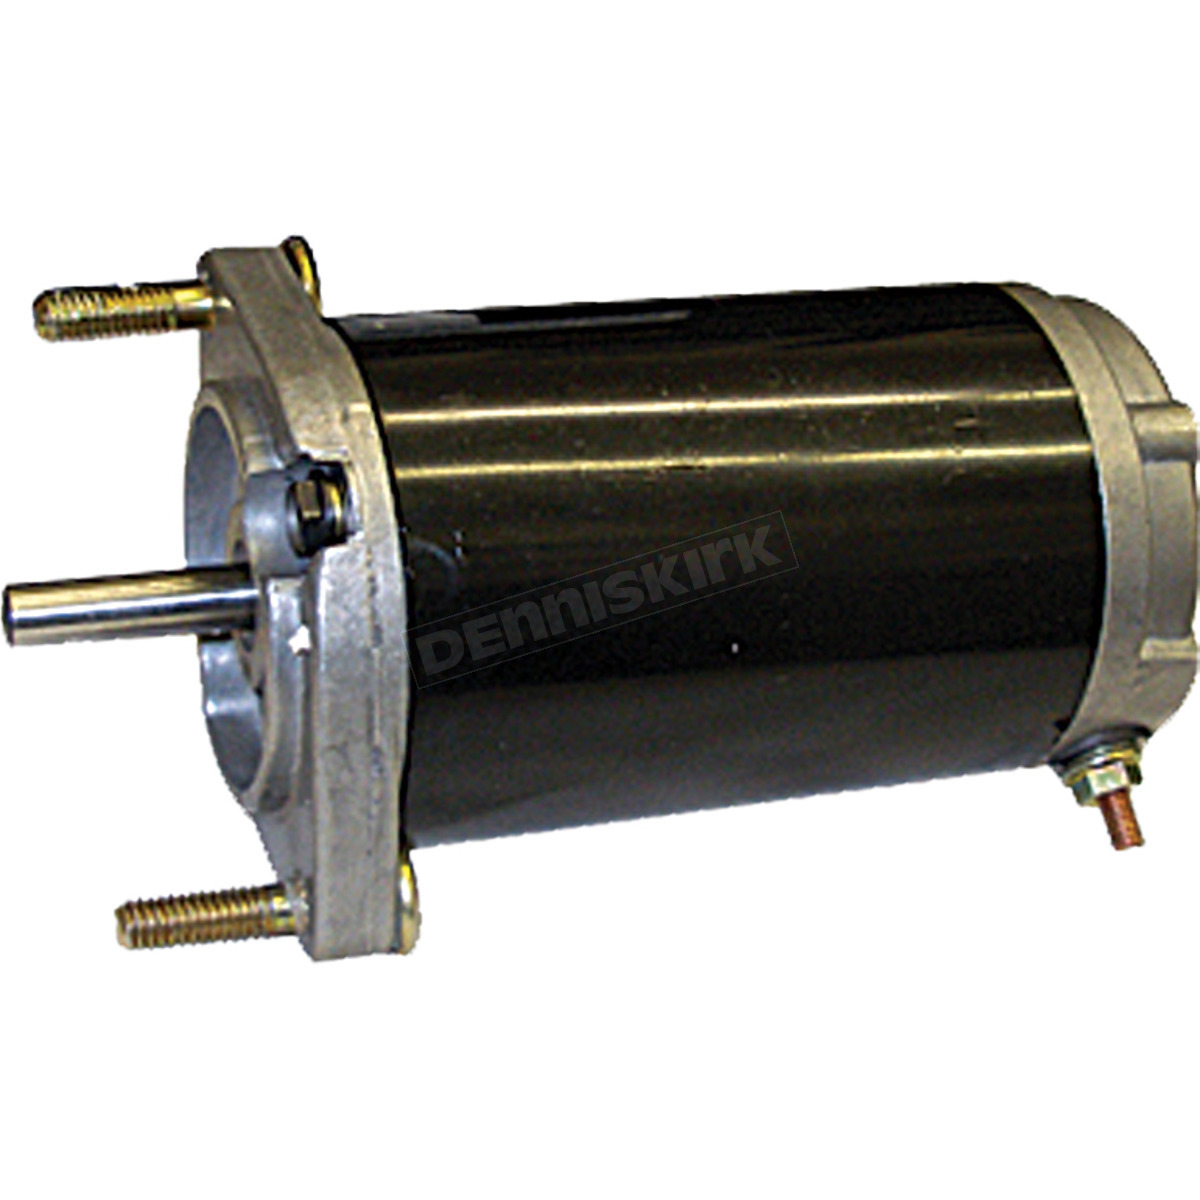 Sports parts inc starter motor sm 01213 snowmobile for Nhd inc motor starter